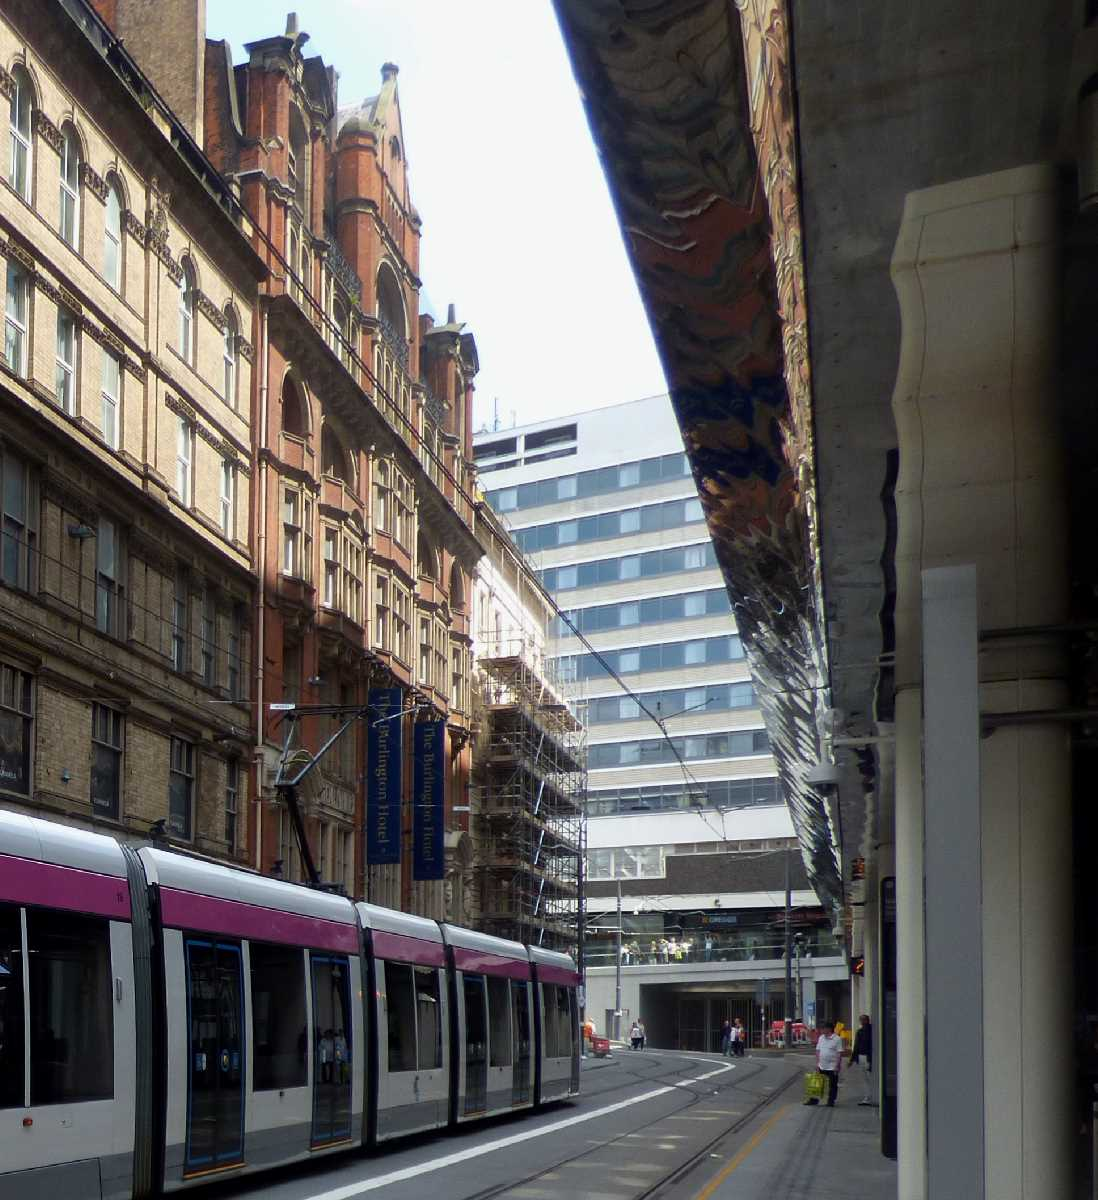 Burlington Hotel and Grand Central Tram Stop